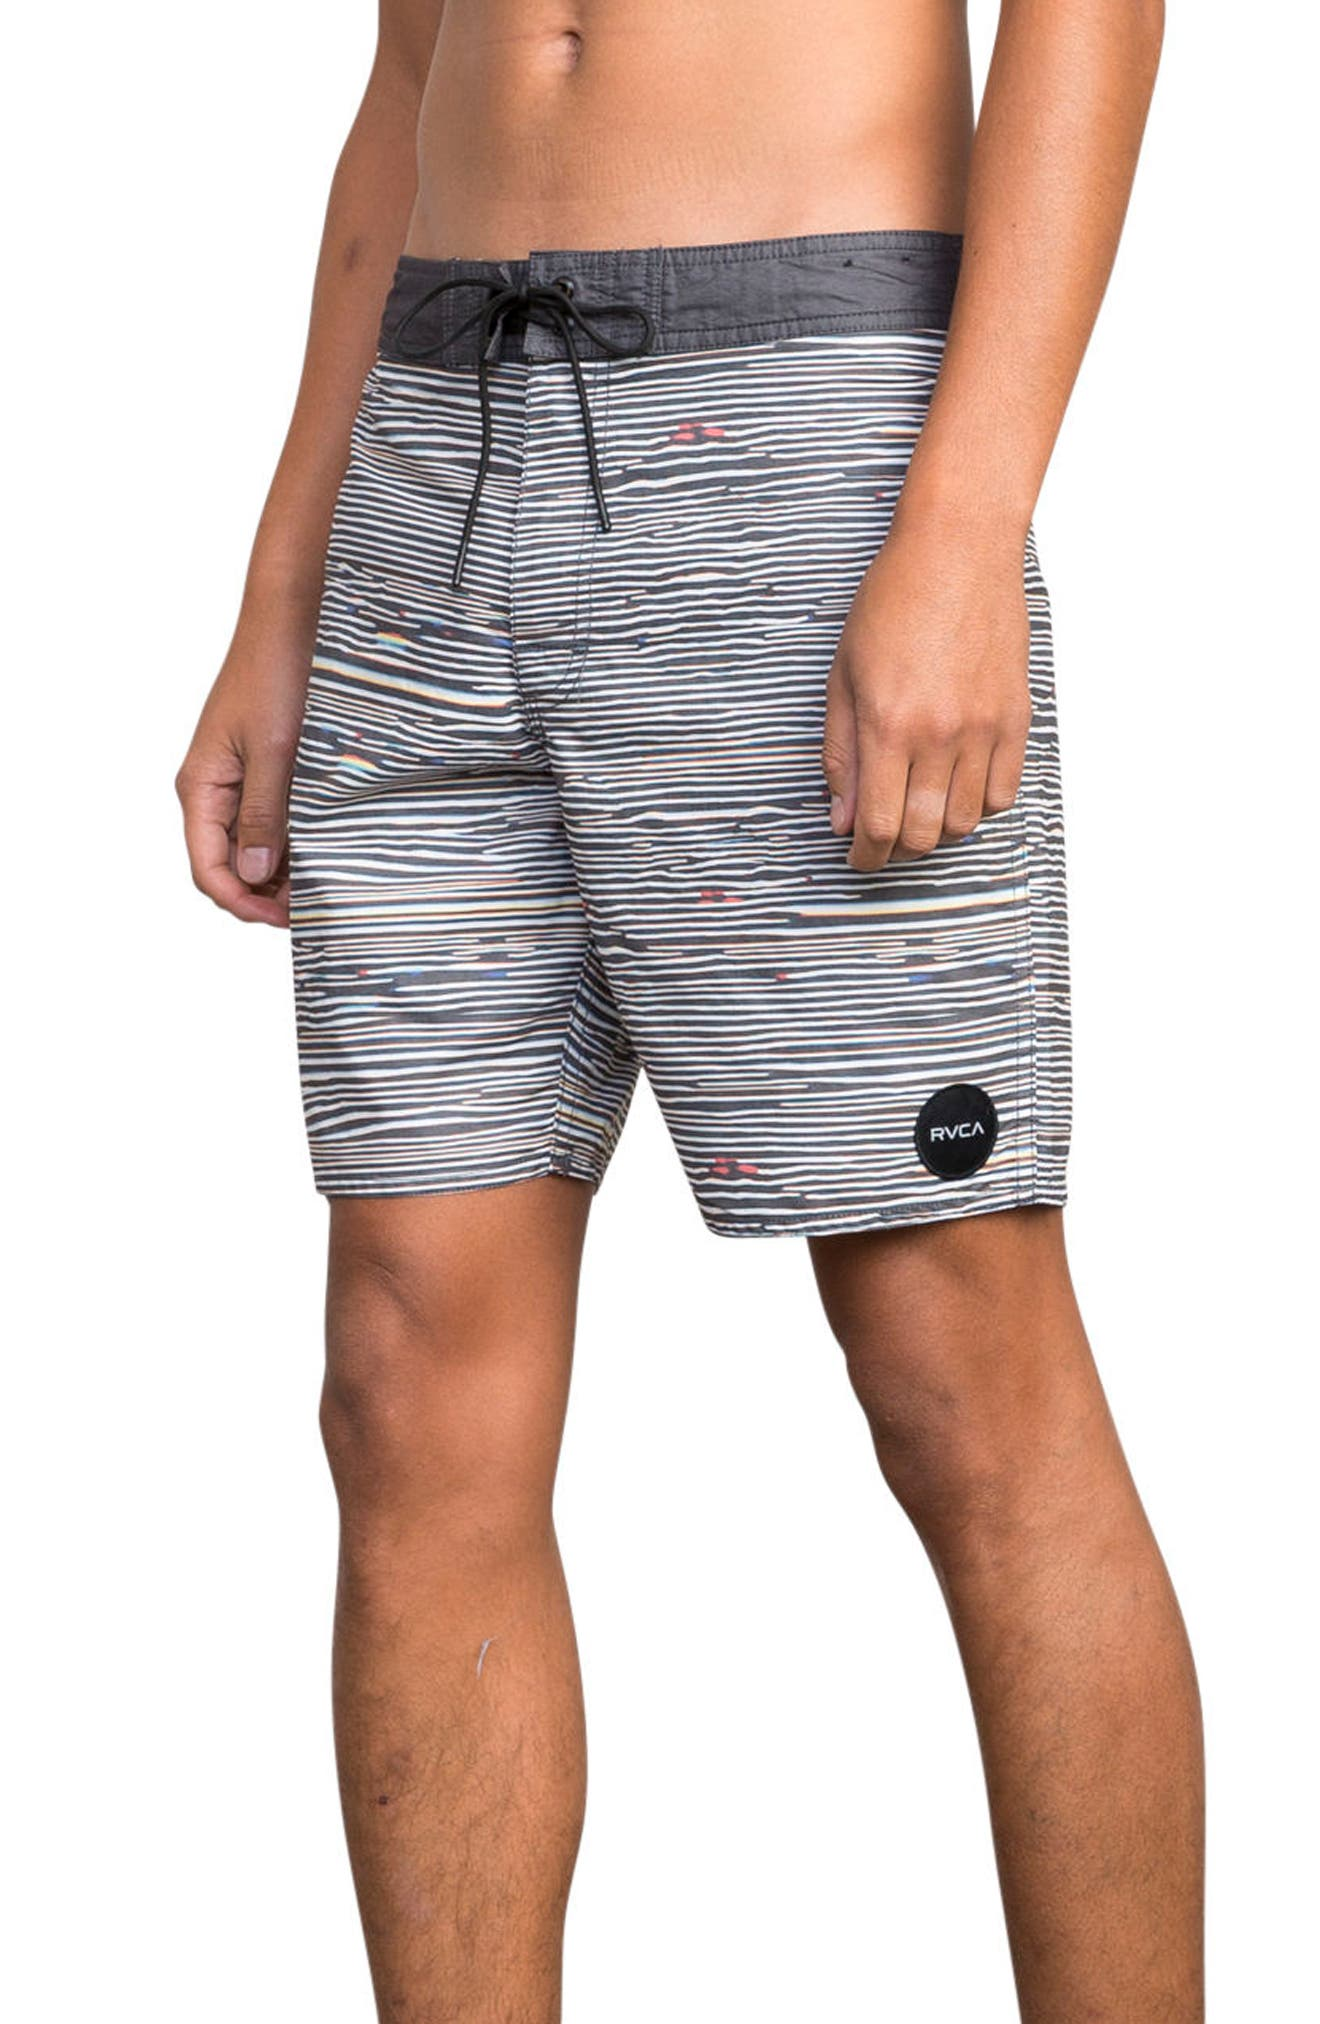 Flinch Board Shorts,                             Alternate thumbnail 4, color,                             020